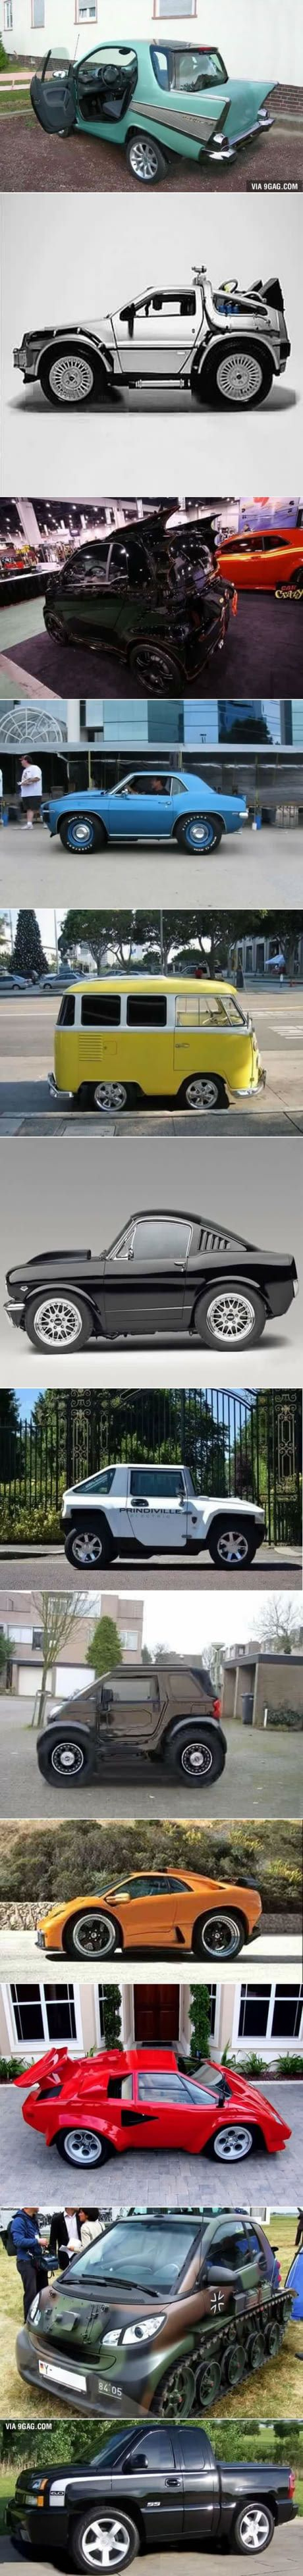 9 best smart cars custom images on pinterest all alone minis 12 cool smart car body kits which one would you choose buycottarizona